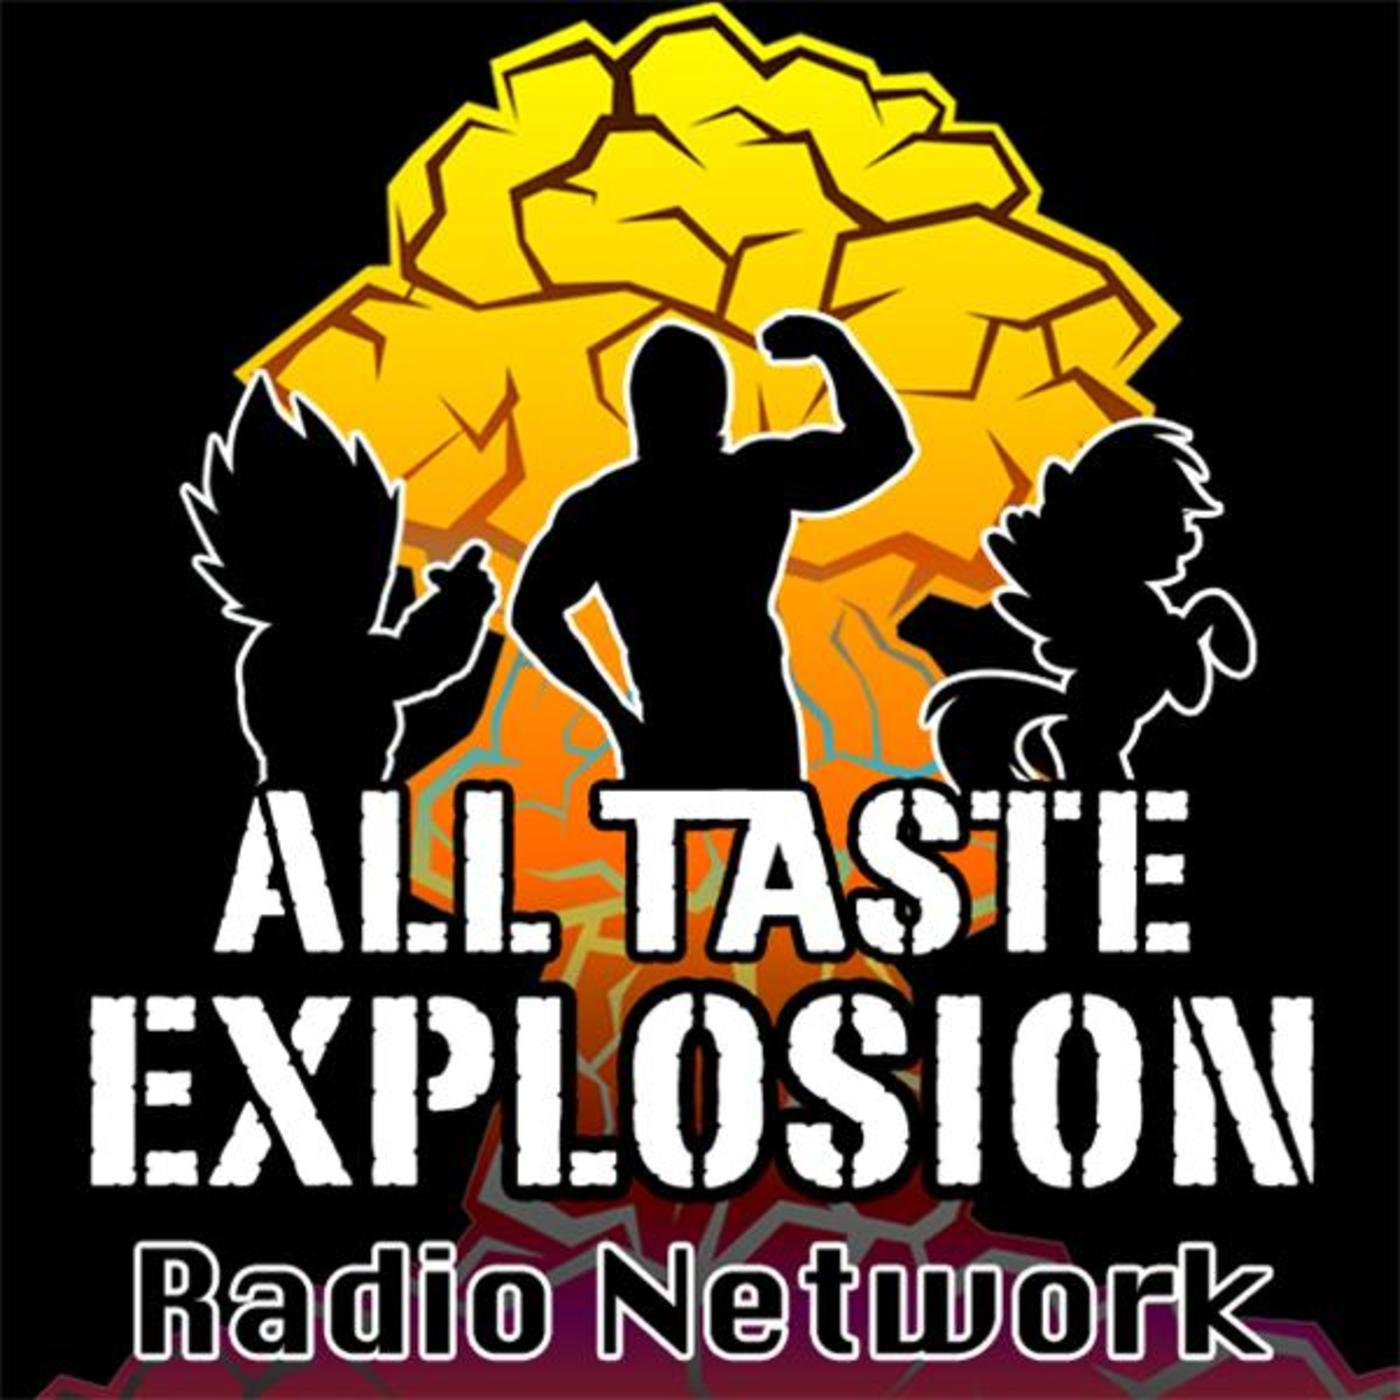 All Taste Explosion Radio Network